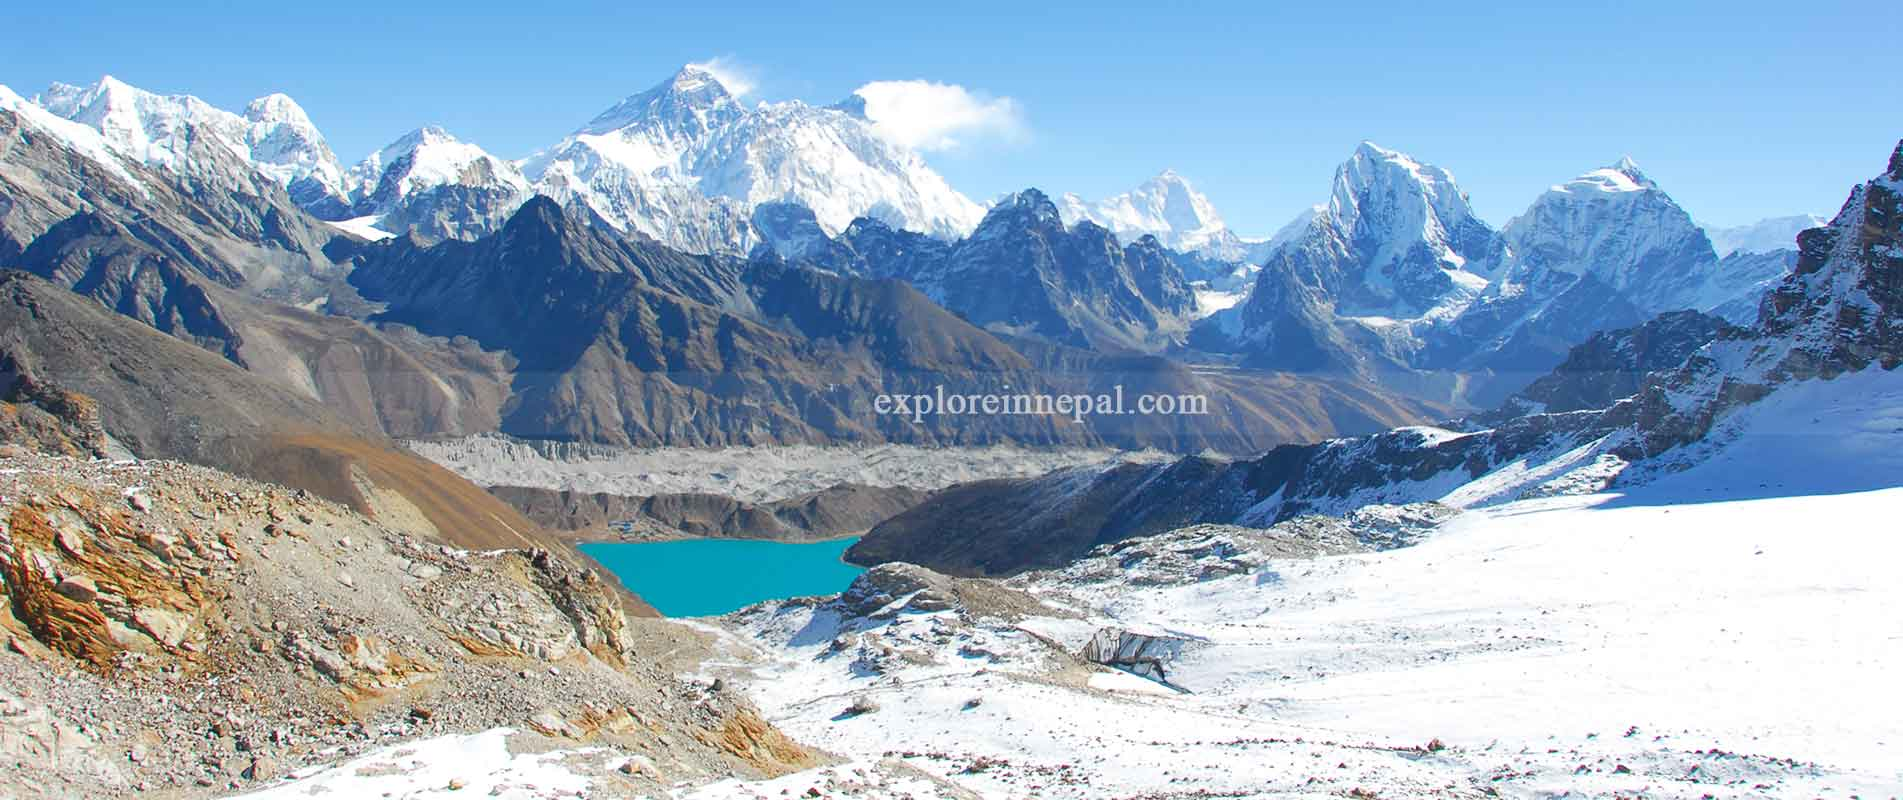 View from Gokyo-ri to Mount Everest range and Gokyo lake